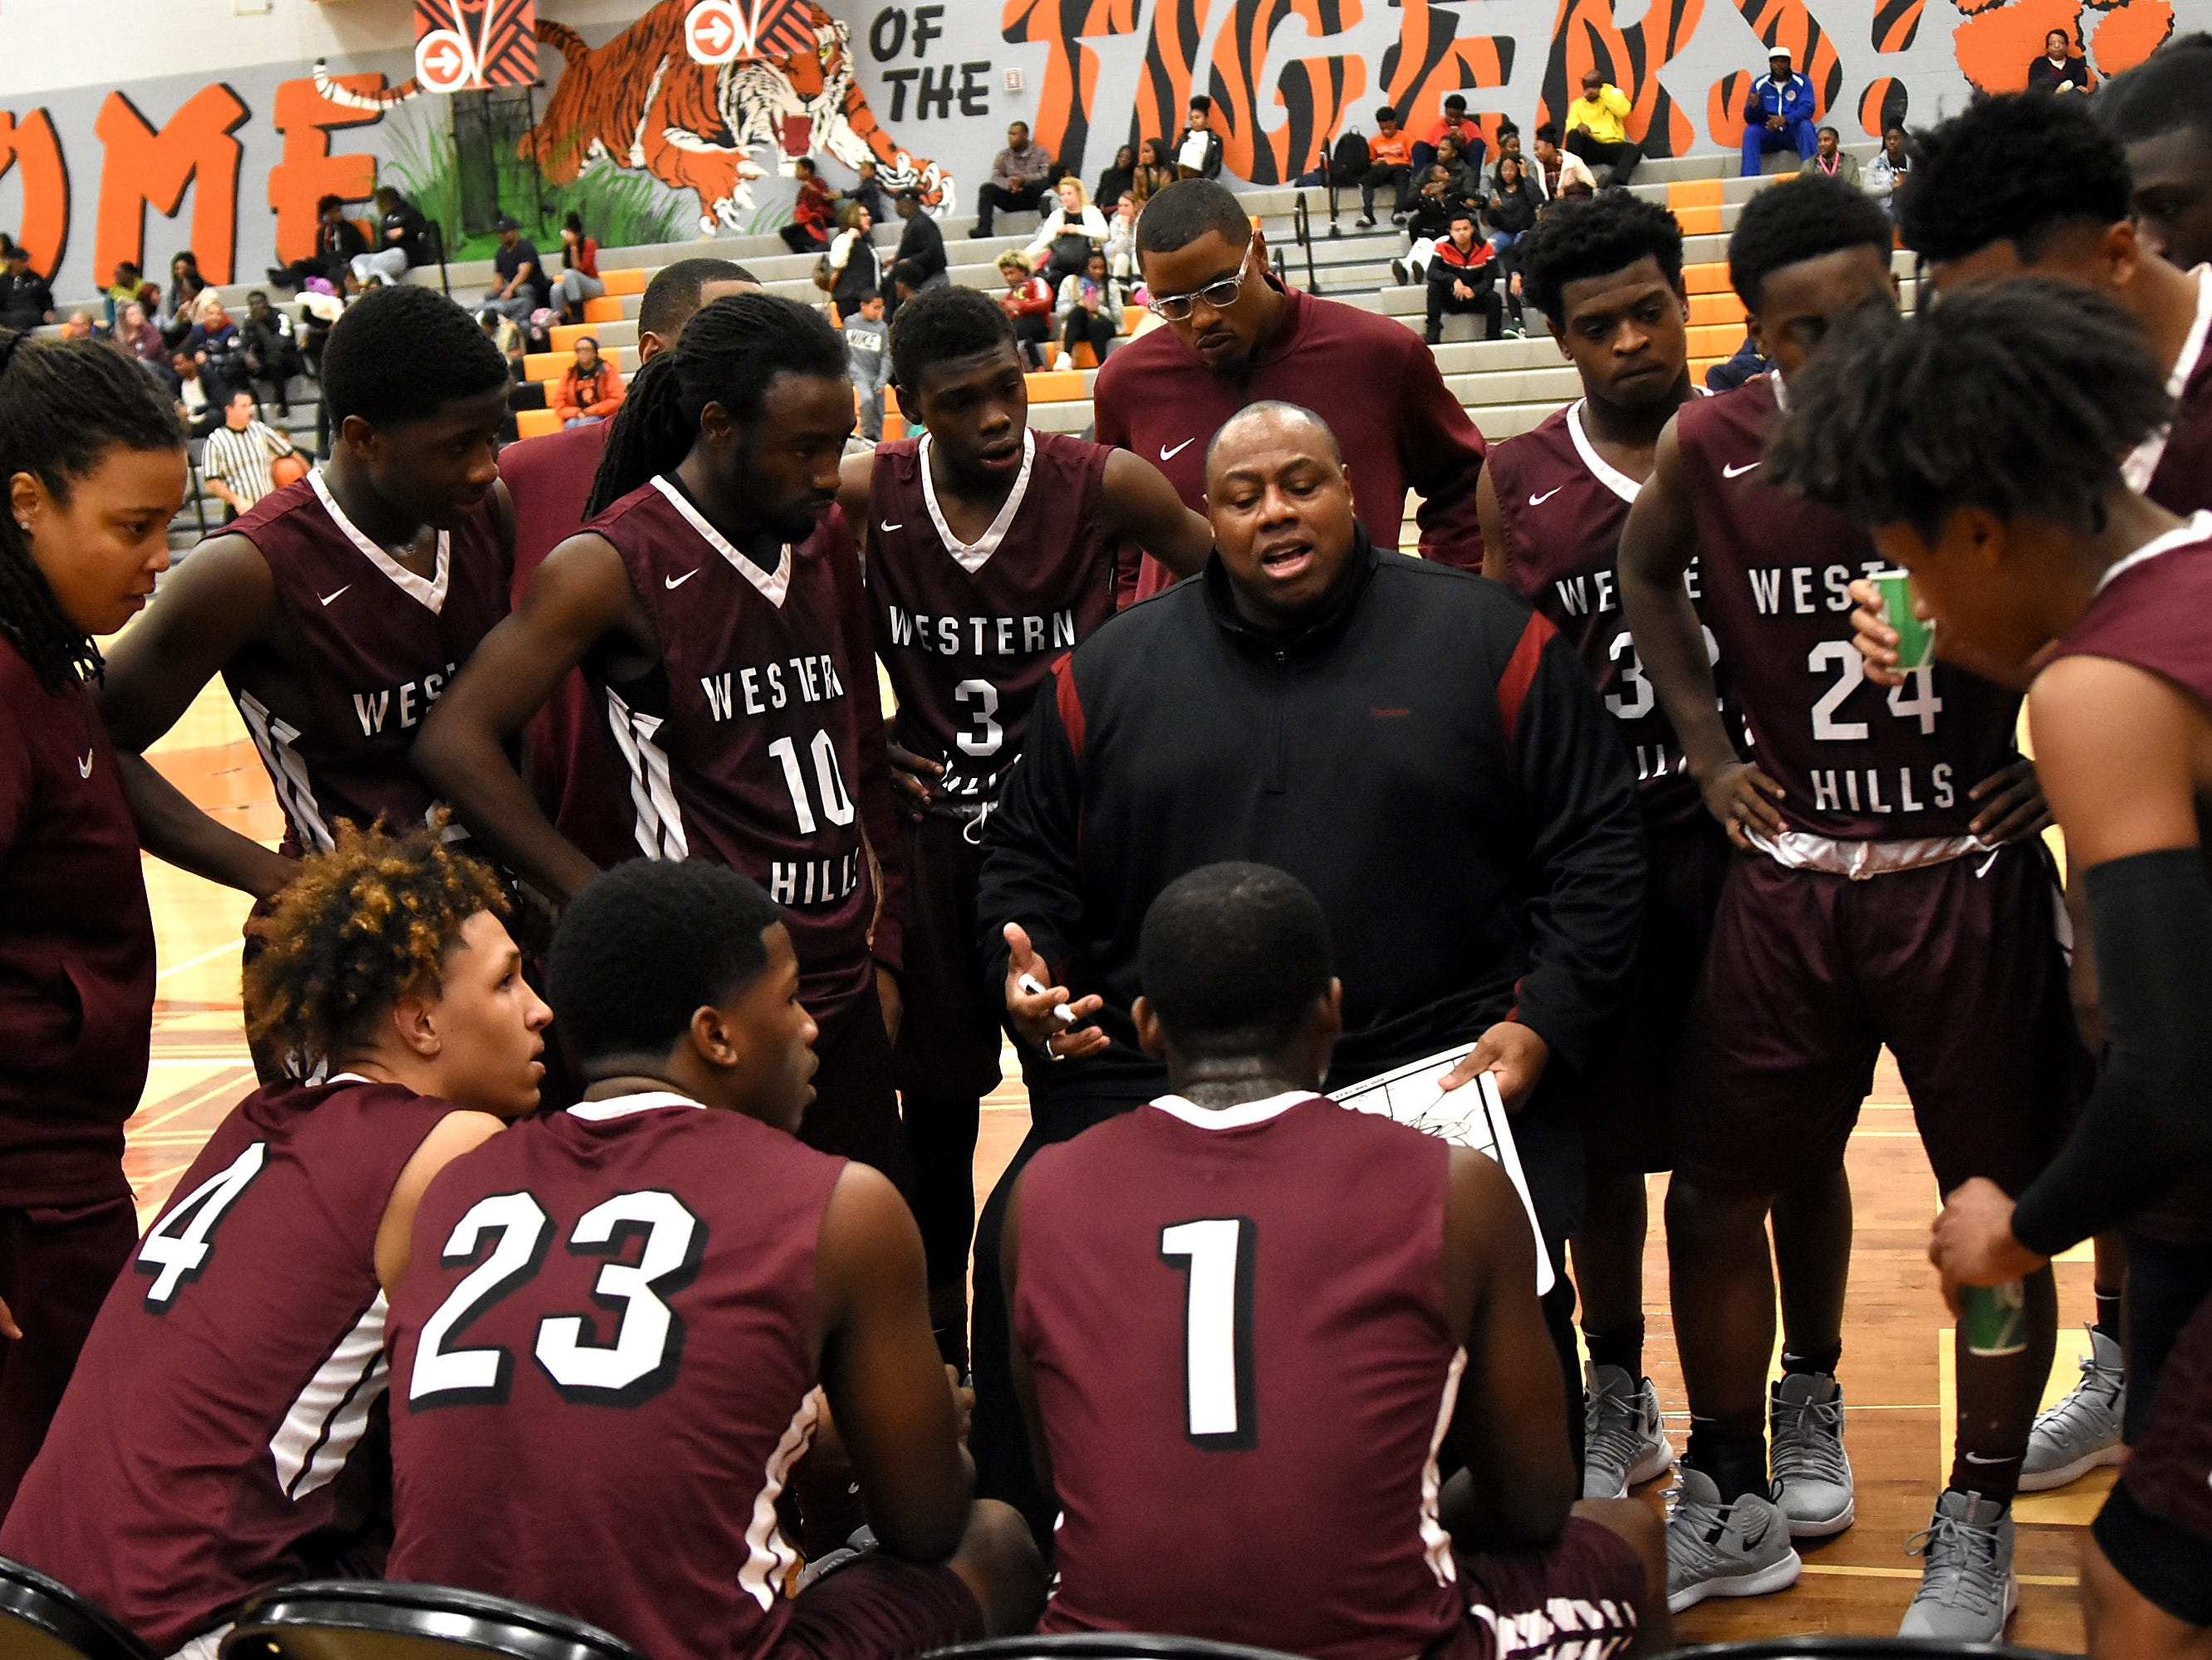 Head Coach Mark Mitchell of Western Hills uses a timeout to help the Mustangs set up their offense, November 30, 2018.